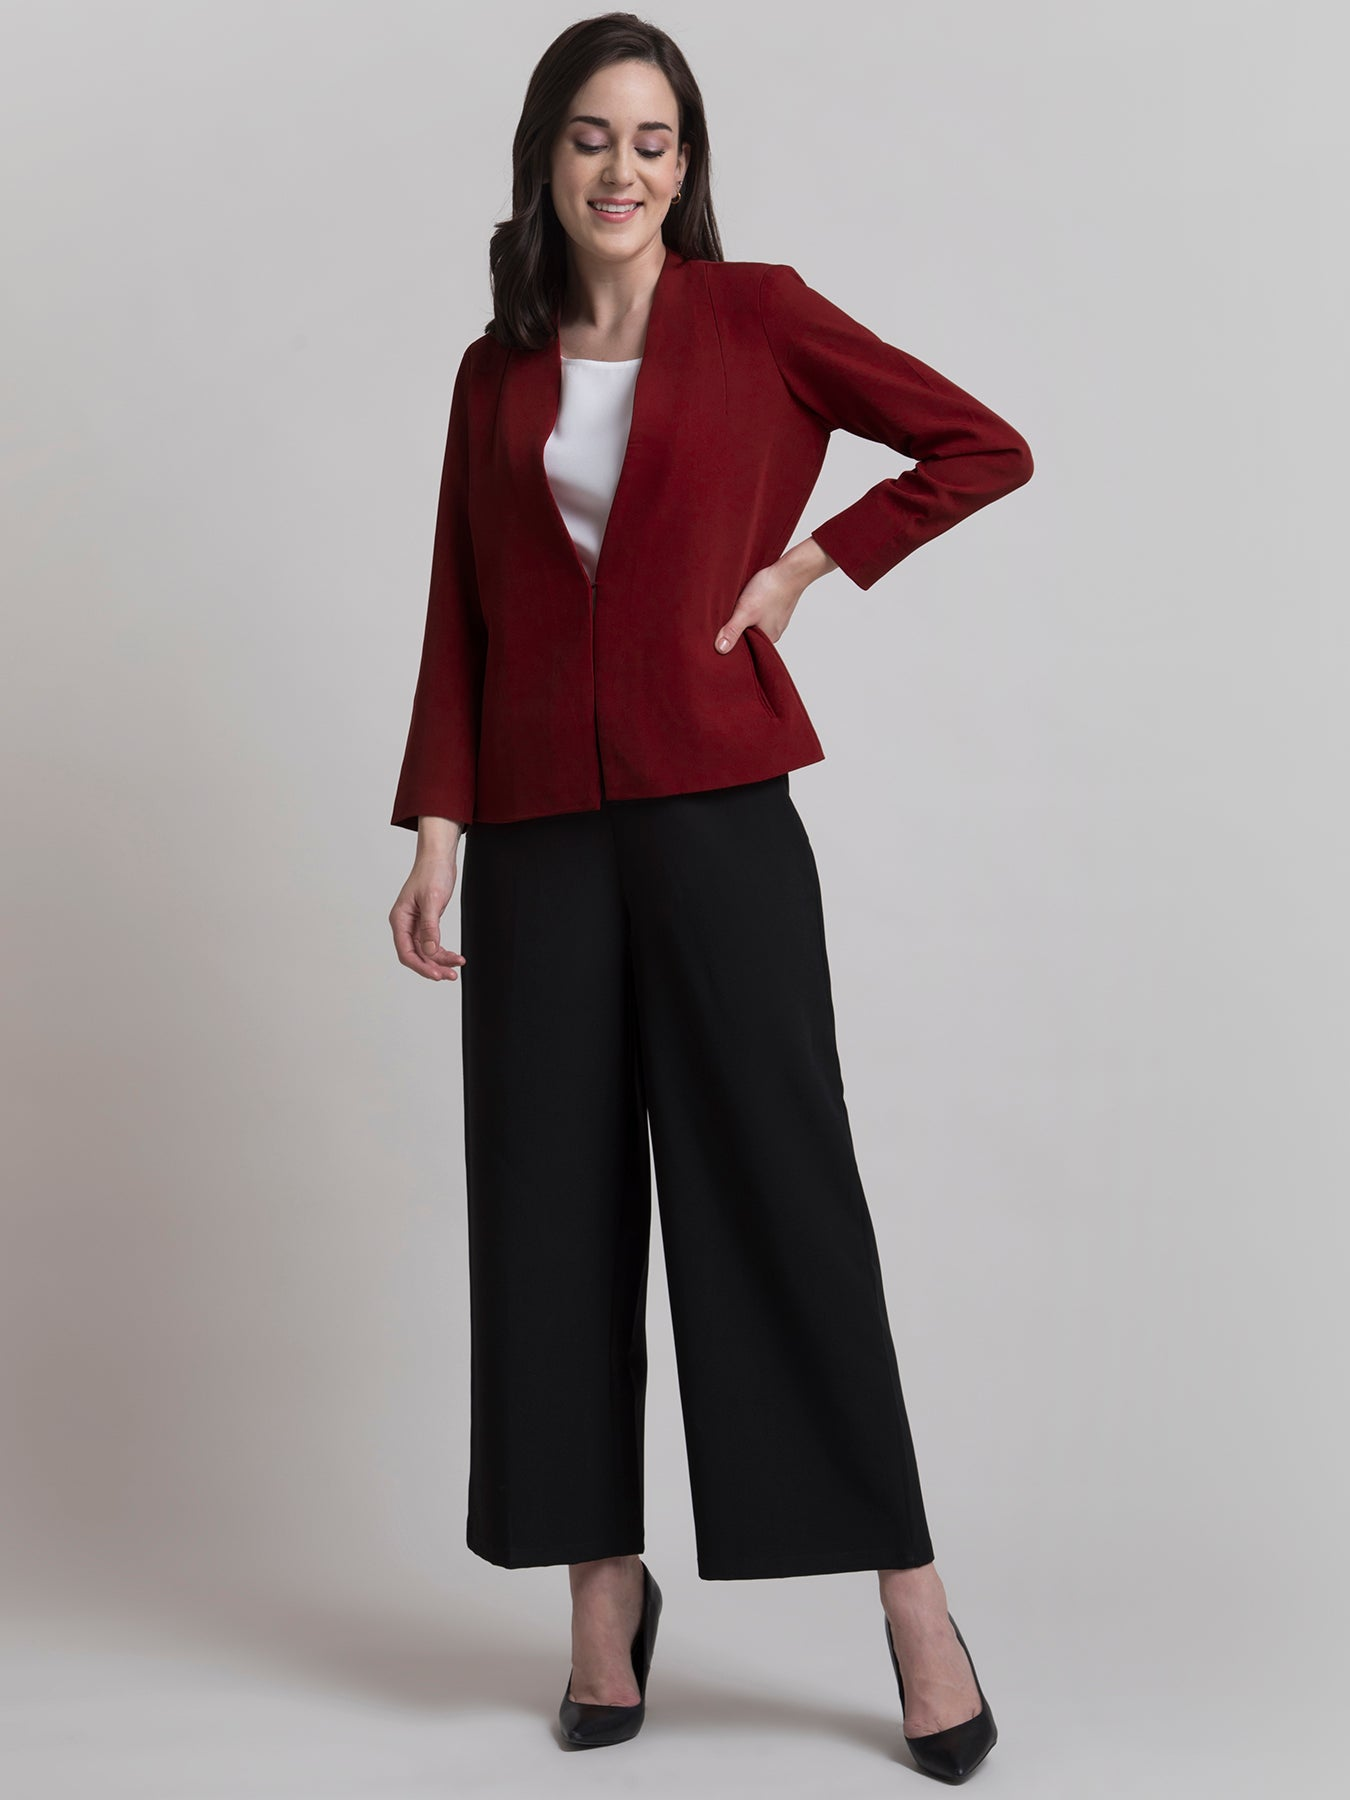 Stylish Jacket With Hook Closure - Dark Red